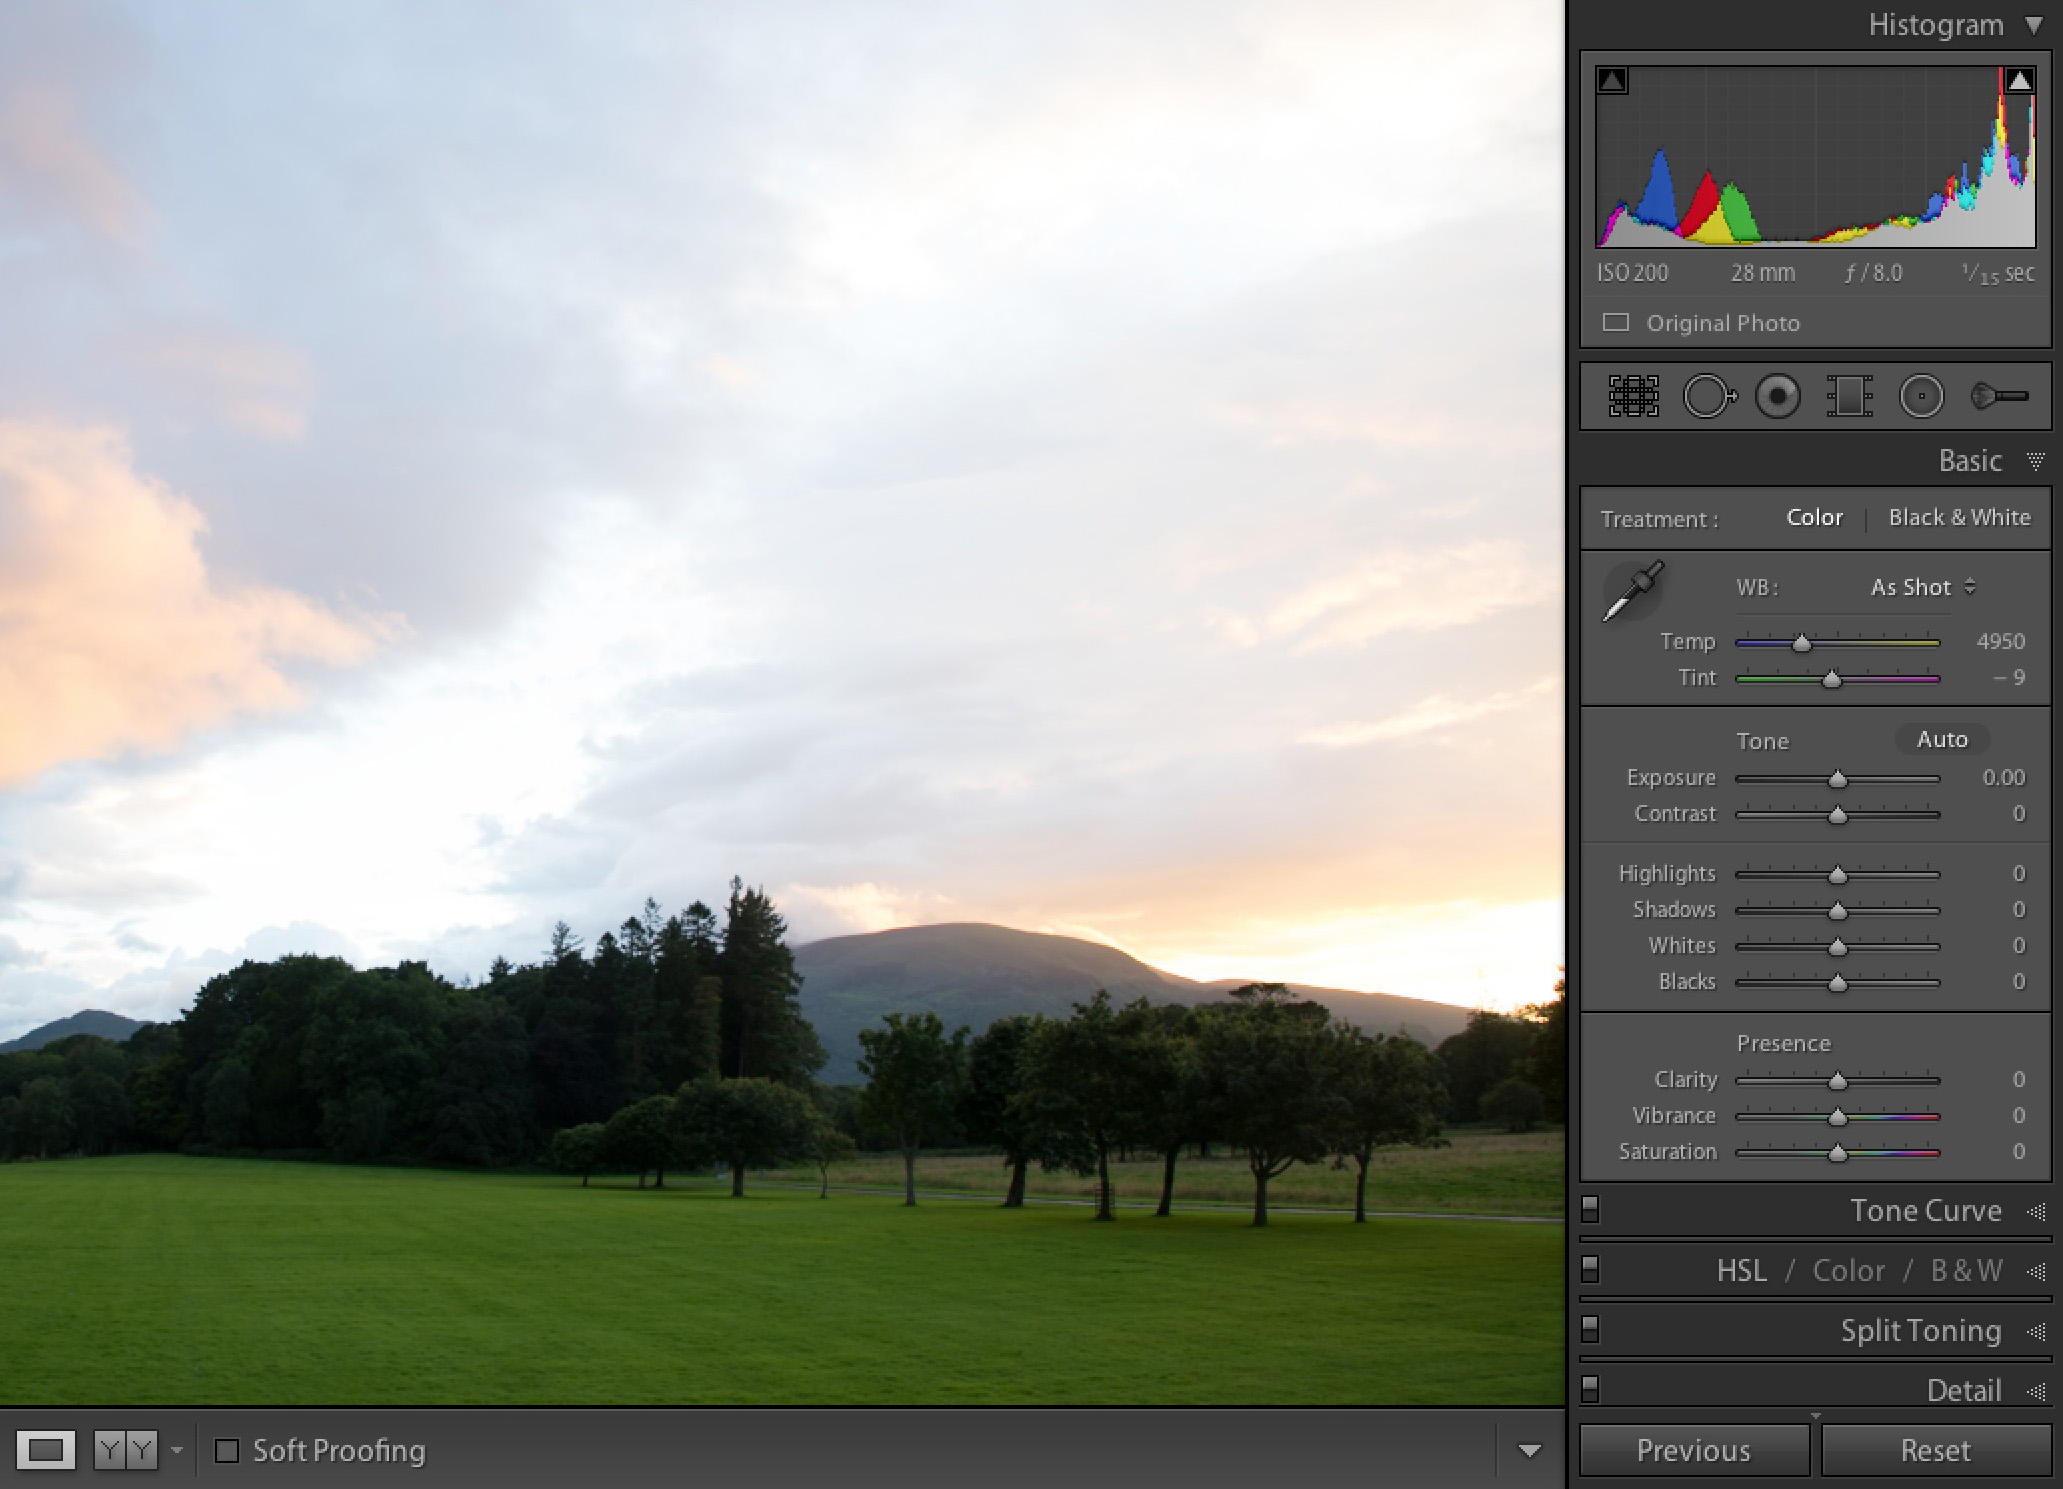 Dealing with Exposure Problems (the Highlights and Shadows Sliders) in Lightroom